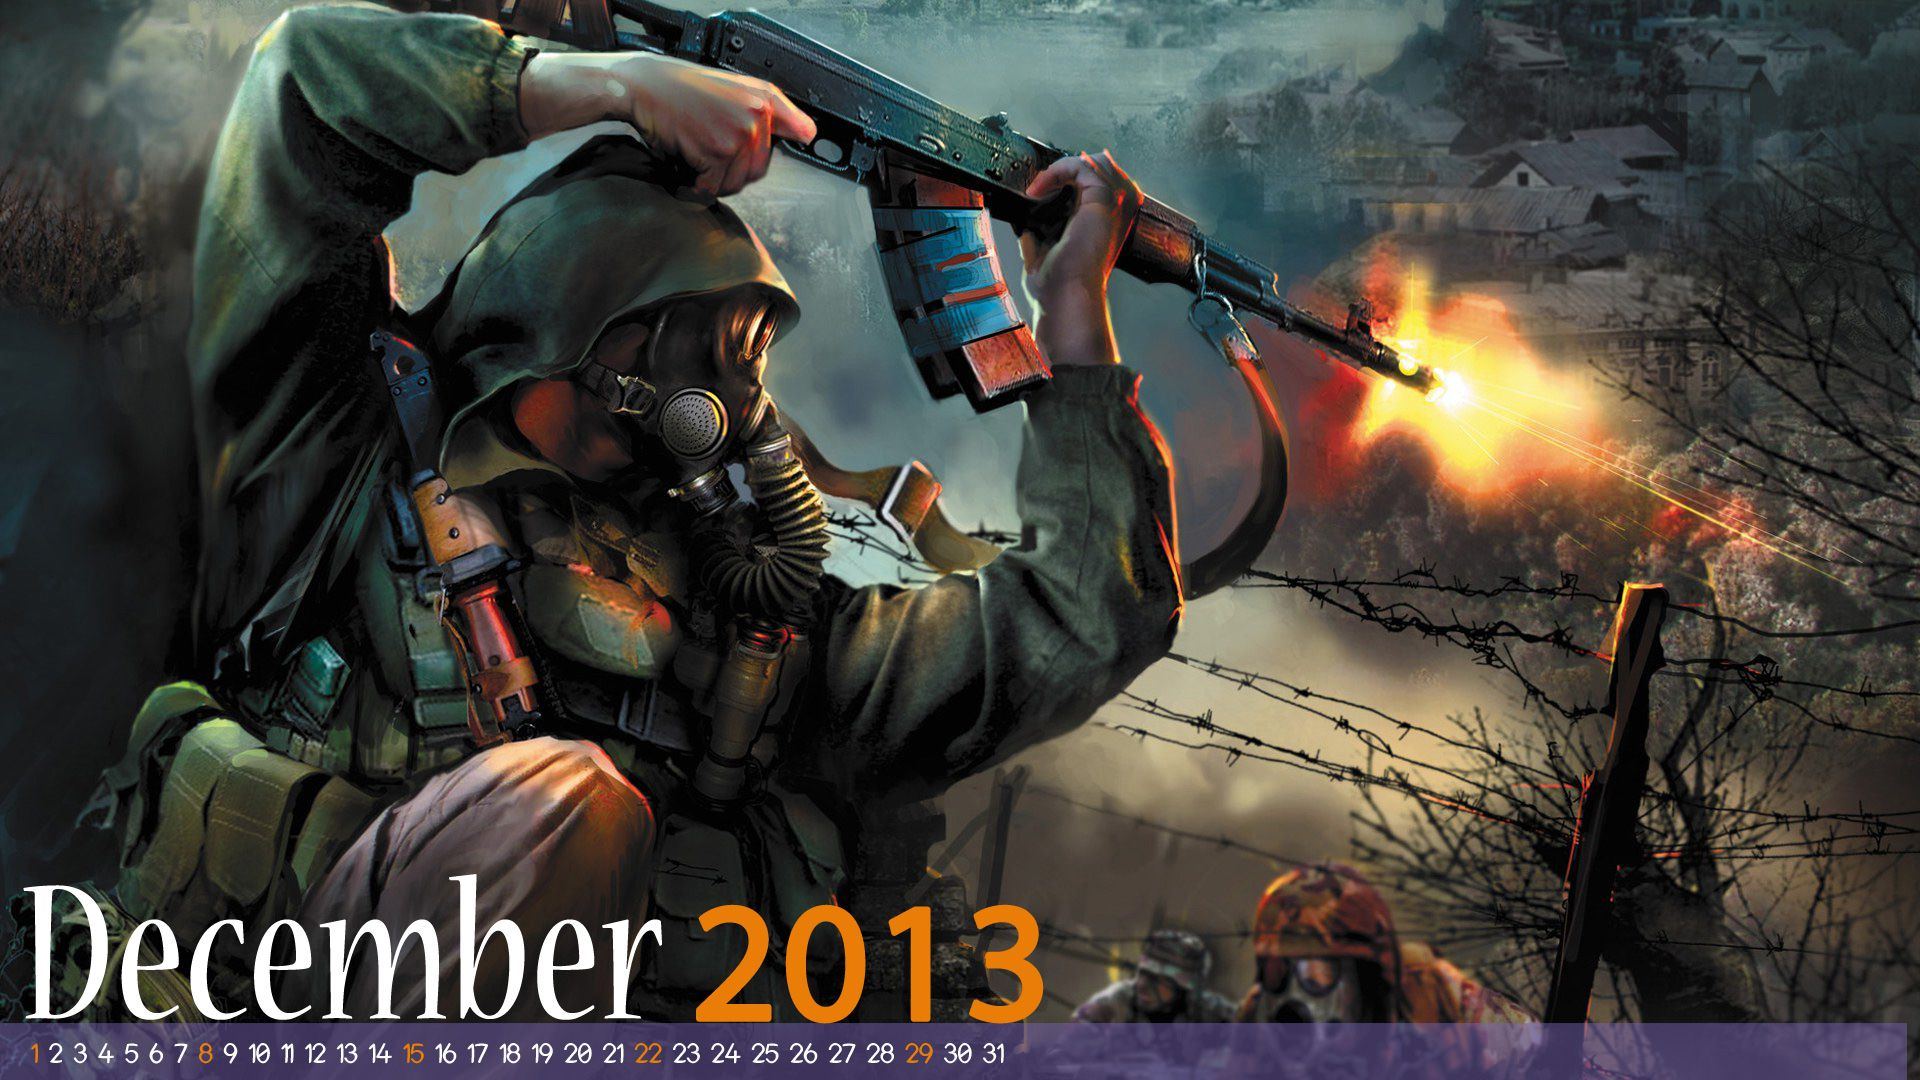 Pin On December 2013 Calendar Wallpaper